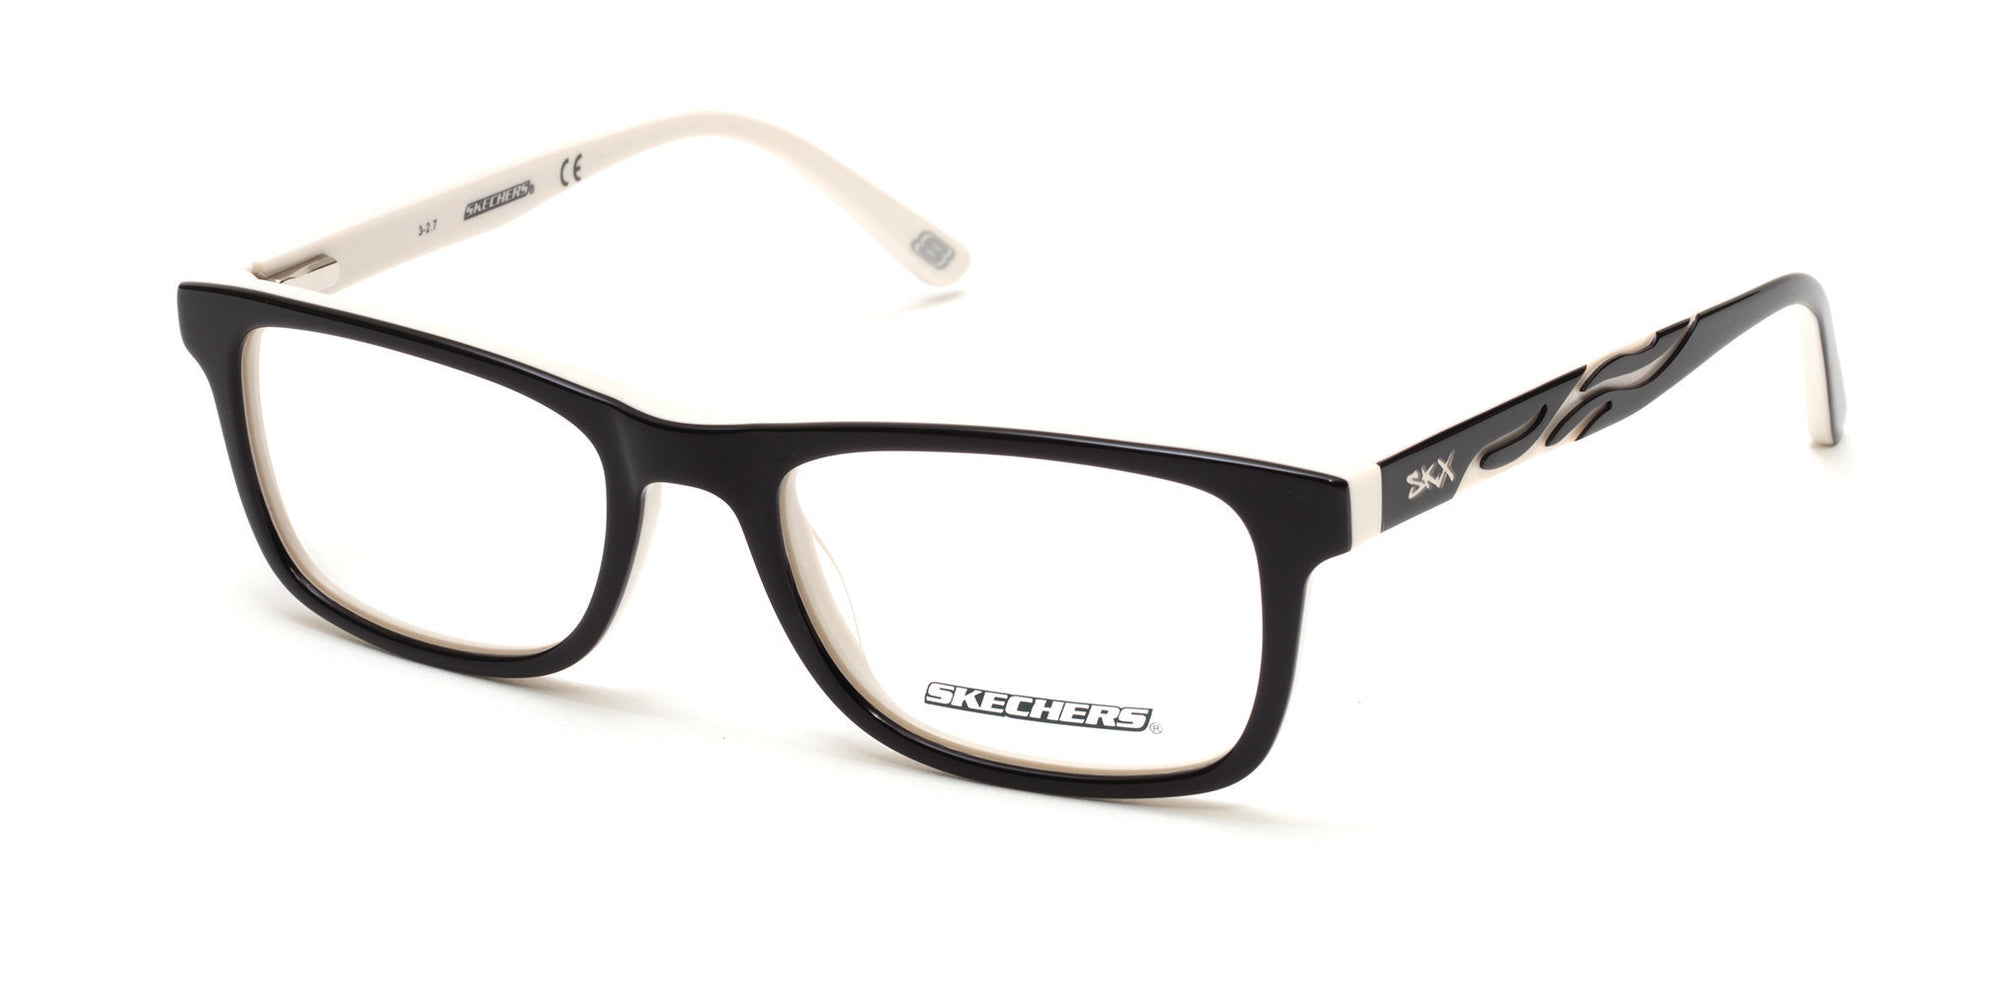 Skechers SE1152 Geometric Eyeglasses 001-001 - Shiny Black